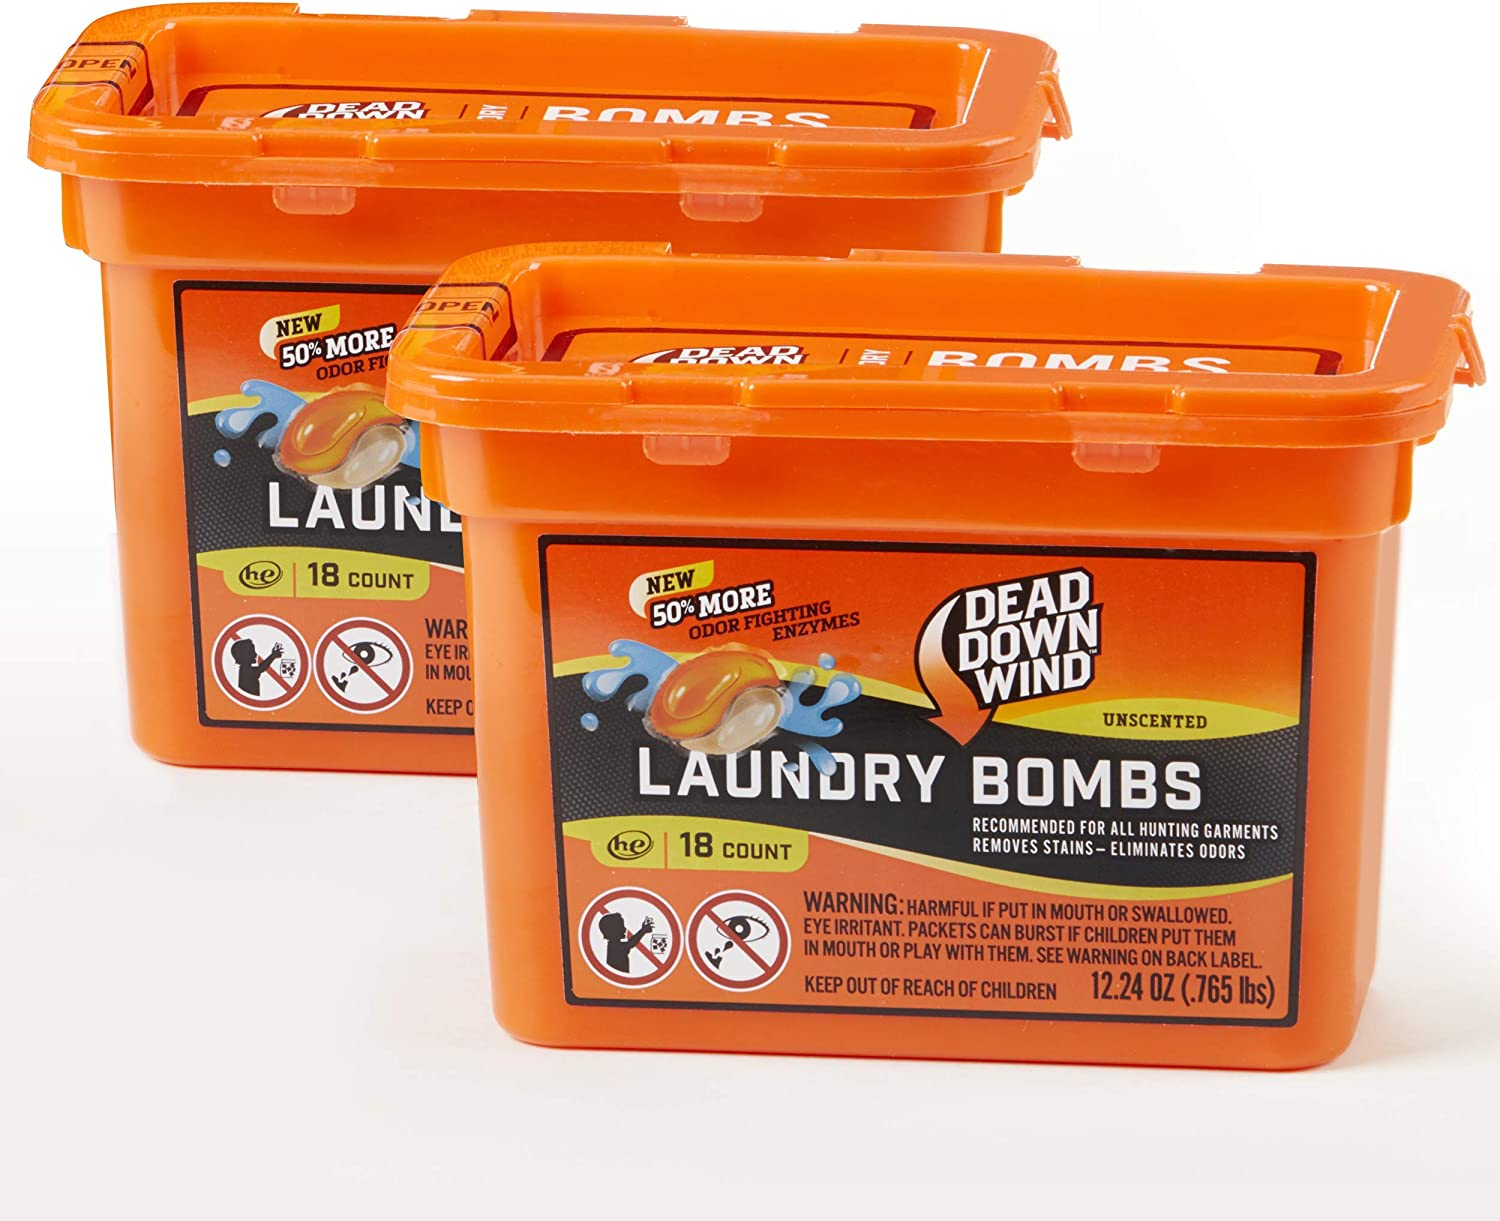 Dead Down Wind Laundry Bombs | 2 Pack | 18 Count (36 Total) | Unscented | Laundry Detergent, Odor Eliminator + Stain Remover for Hunting Accessories, Gear and Clothes, Safe for Sensitive Skin